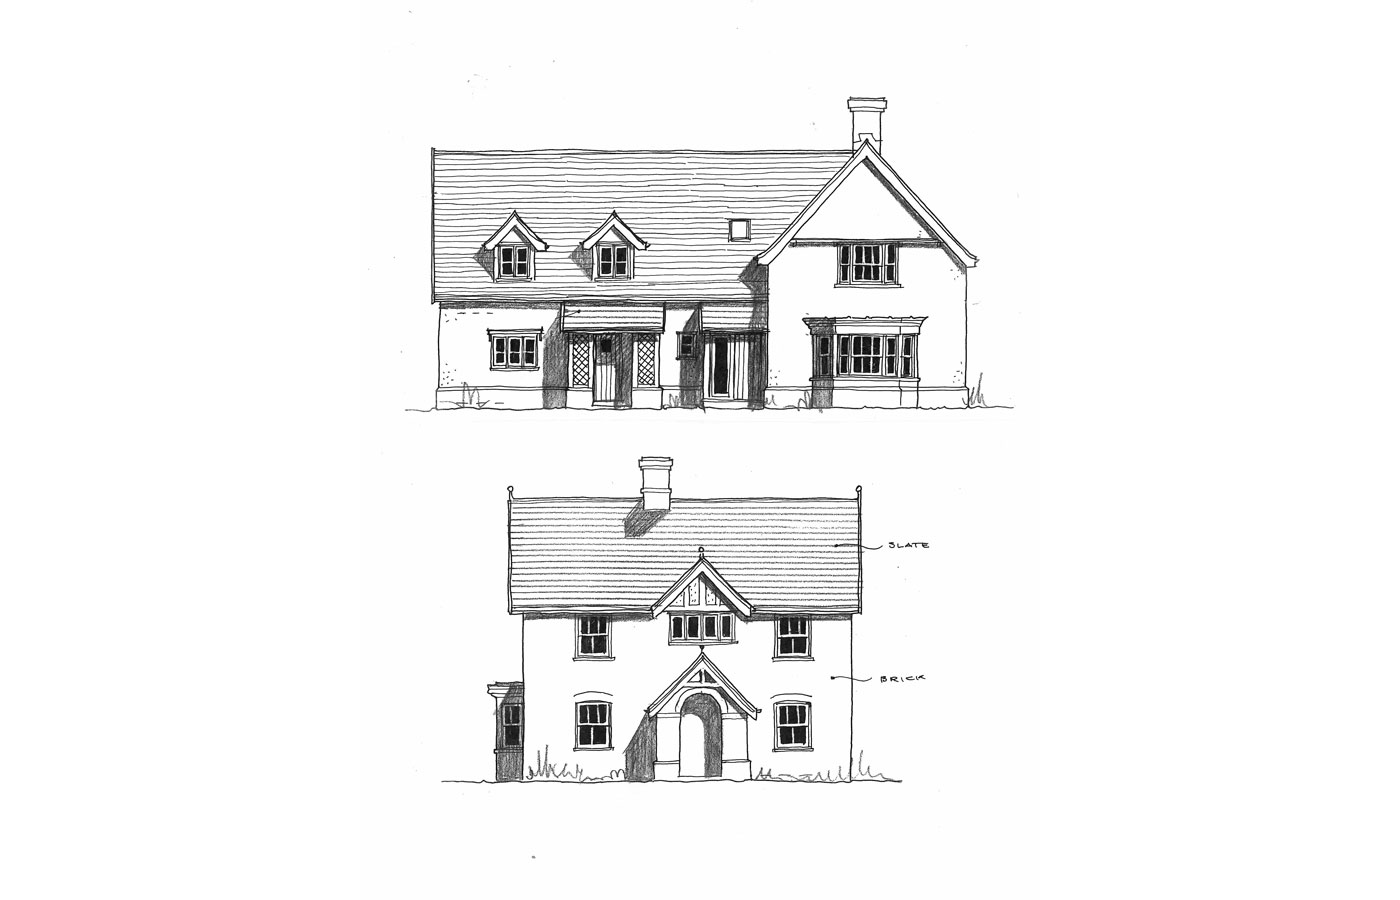 New Housing Project Designs - Wickhambrook